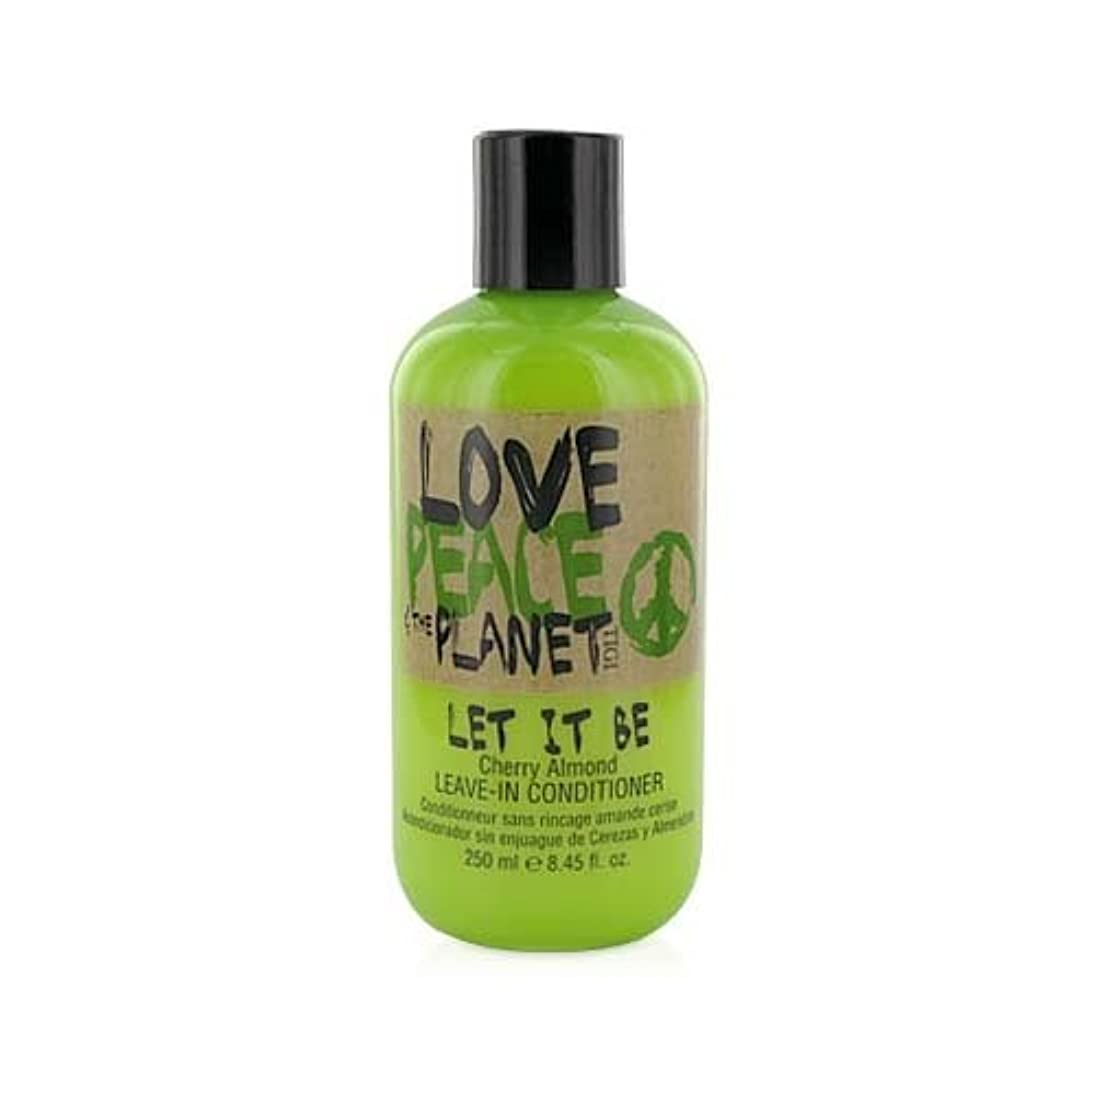 狂った倫理スーパーTIGI Love Peace and The Planet Let It Be Cherry Almond Leave-in Conditioner 250 ml (並行輸入品)